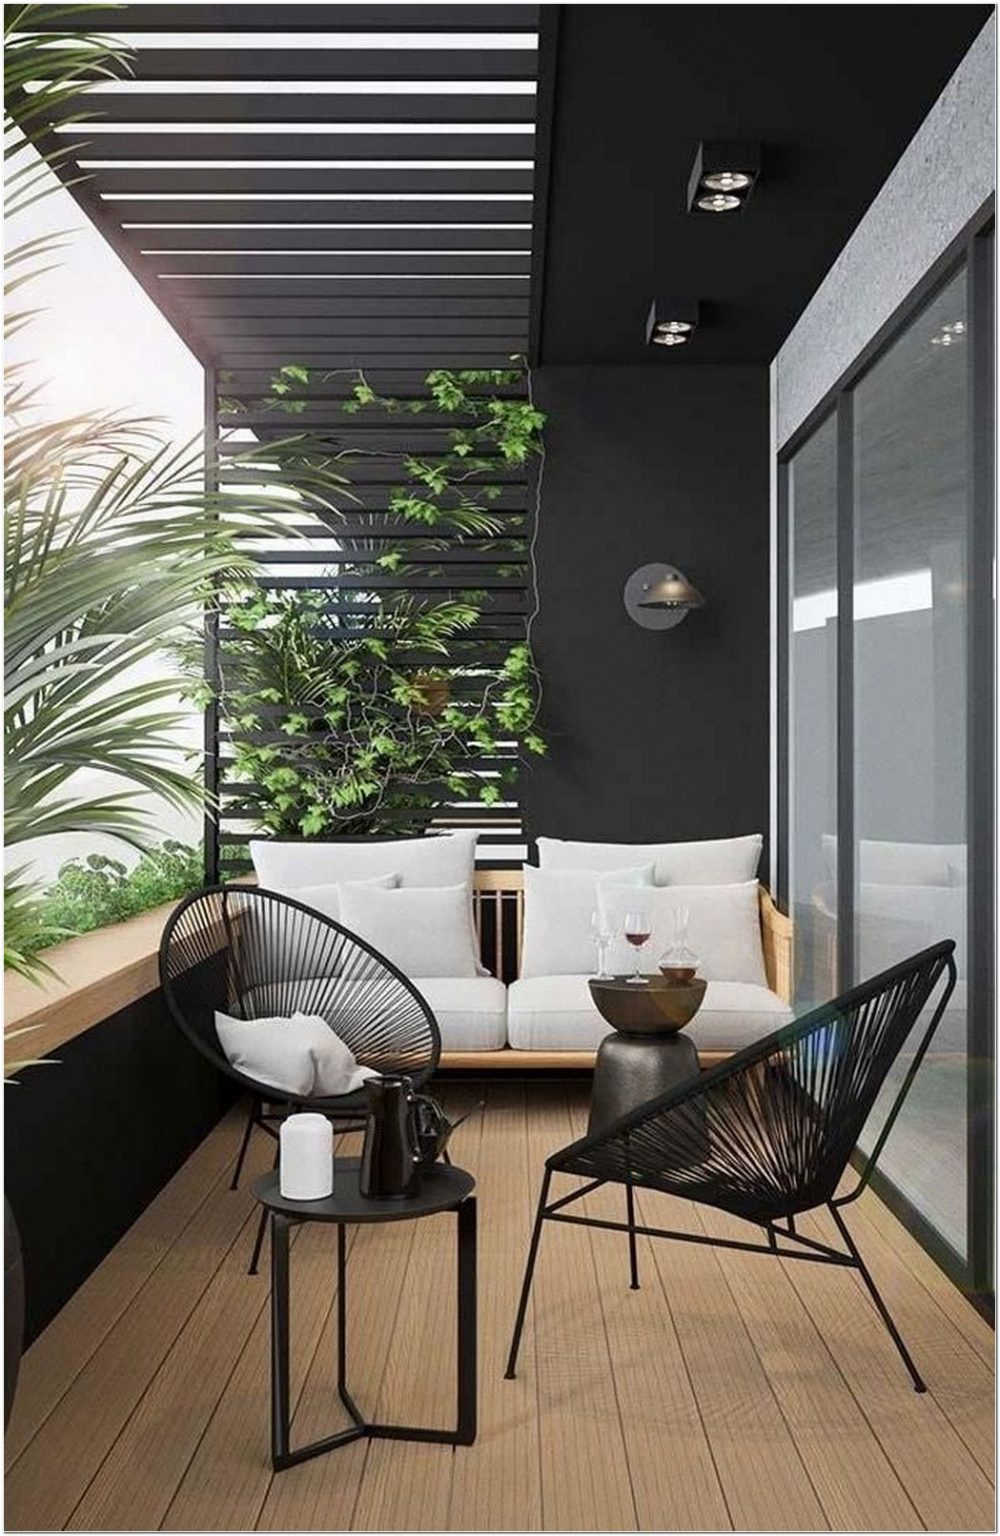 75 Relaxing Summer Backyard Patio Outdoor Seating Ideas 13 In 2020 Small Balcony Decor Balcony Decor White Room Decor #patio #furniture #in #the #living #room